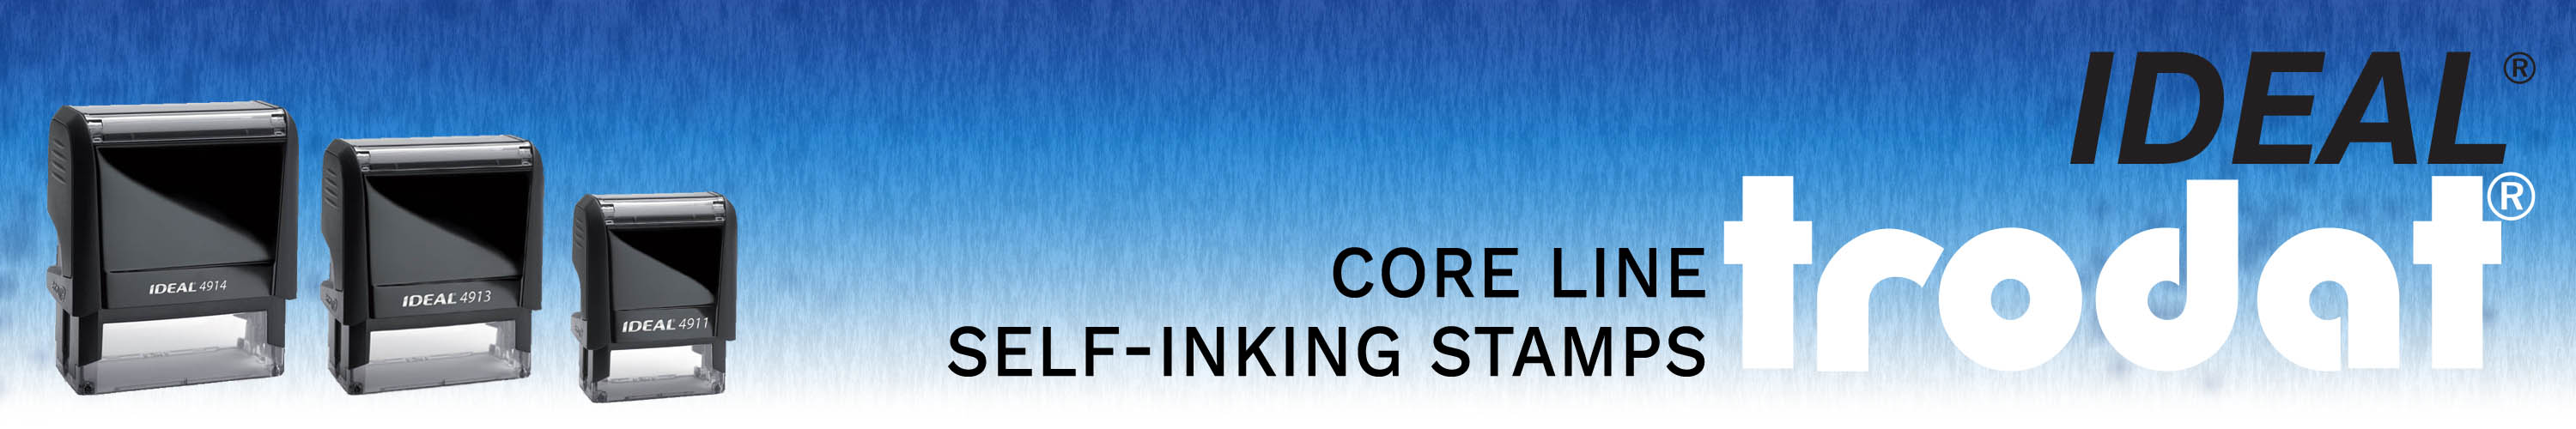 Trodat Core Line Self-Inking Rubber Stamps made and shipped daily from Stamp-Connection.